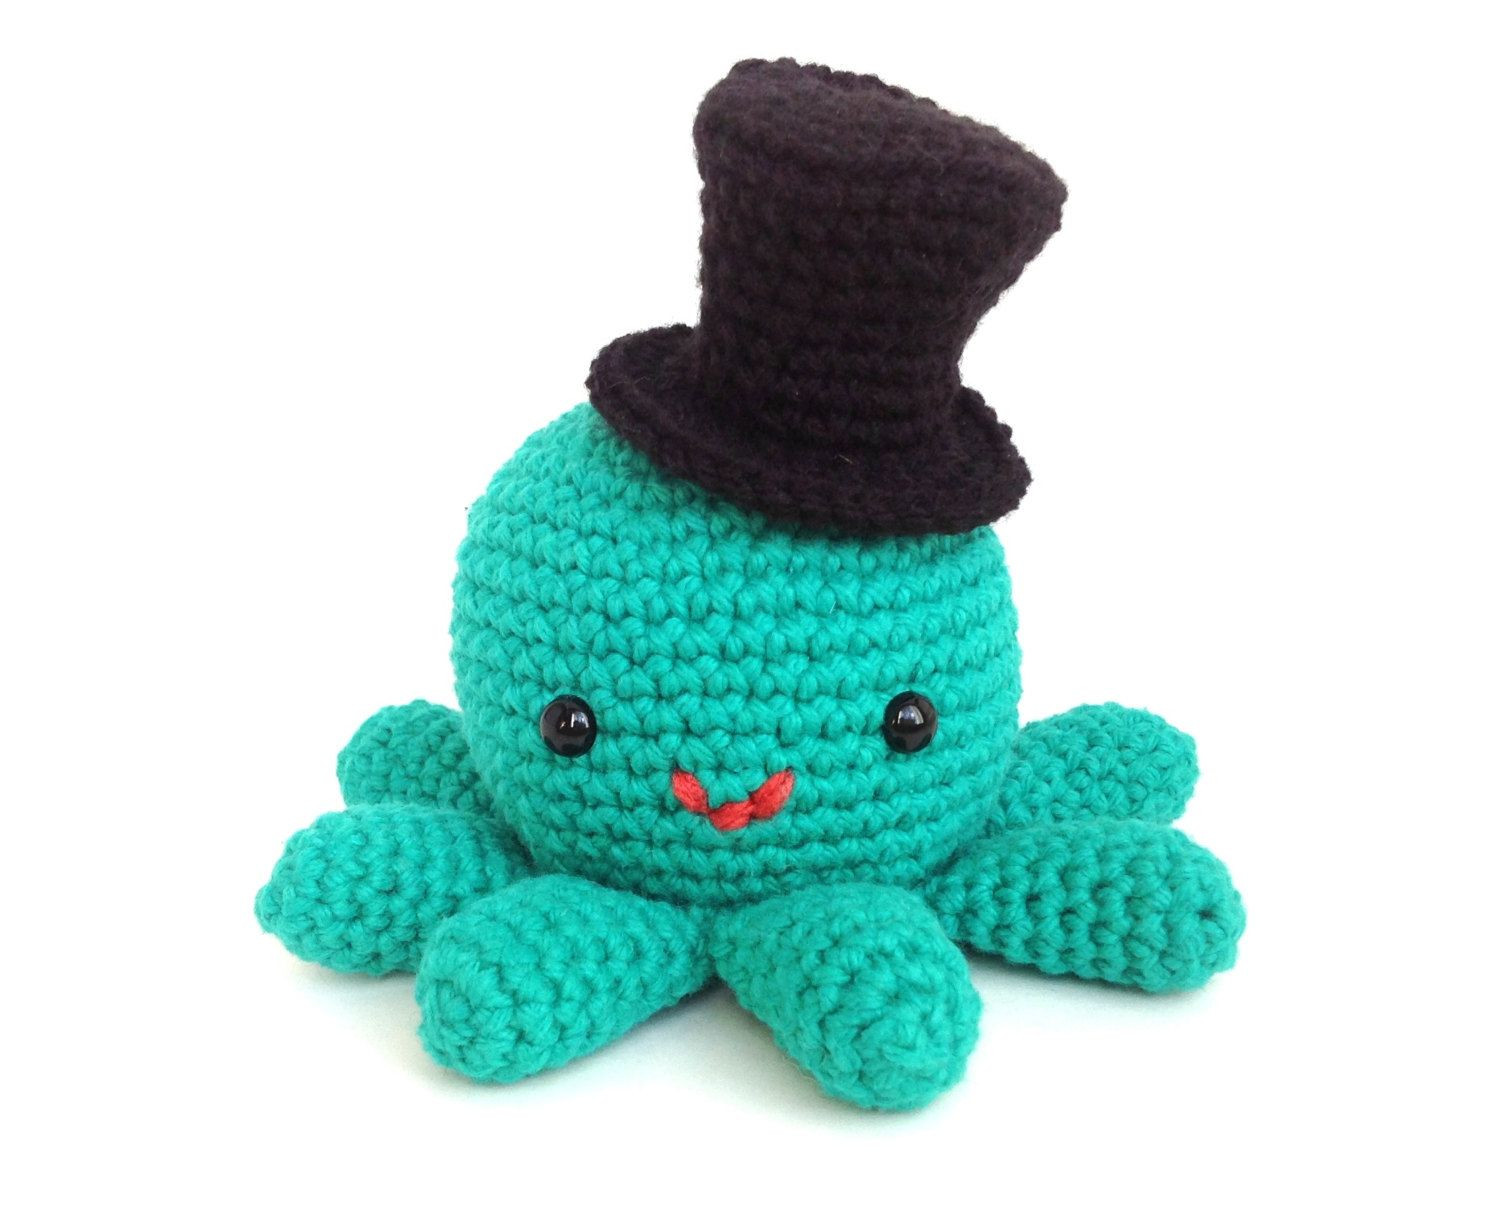 Crochet Stuffed Animals Awesome Hector the Octopus Has A Hat Cute Crochet Amigurumi Of Incredible 42 Images Crochet Stuffed Animals